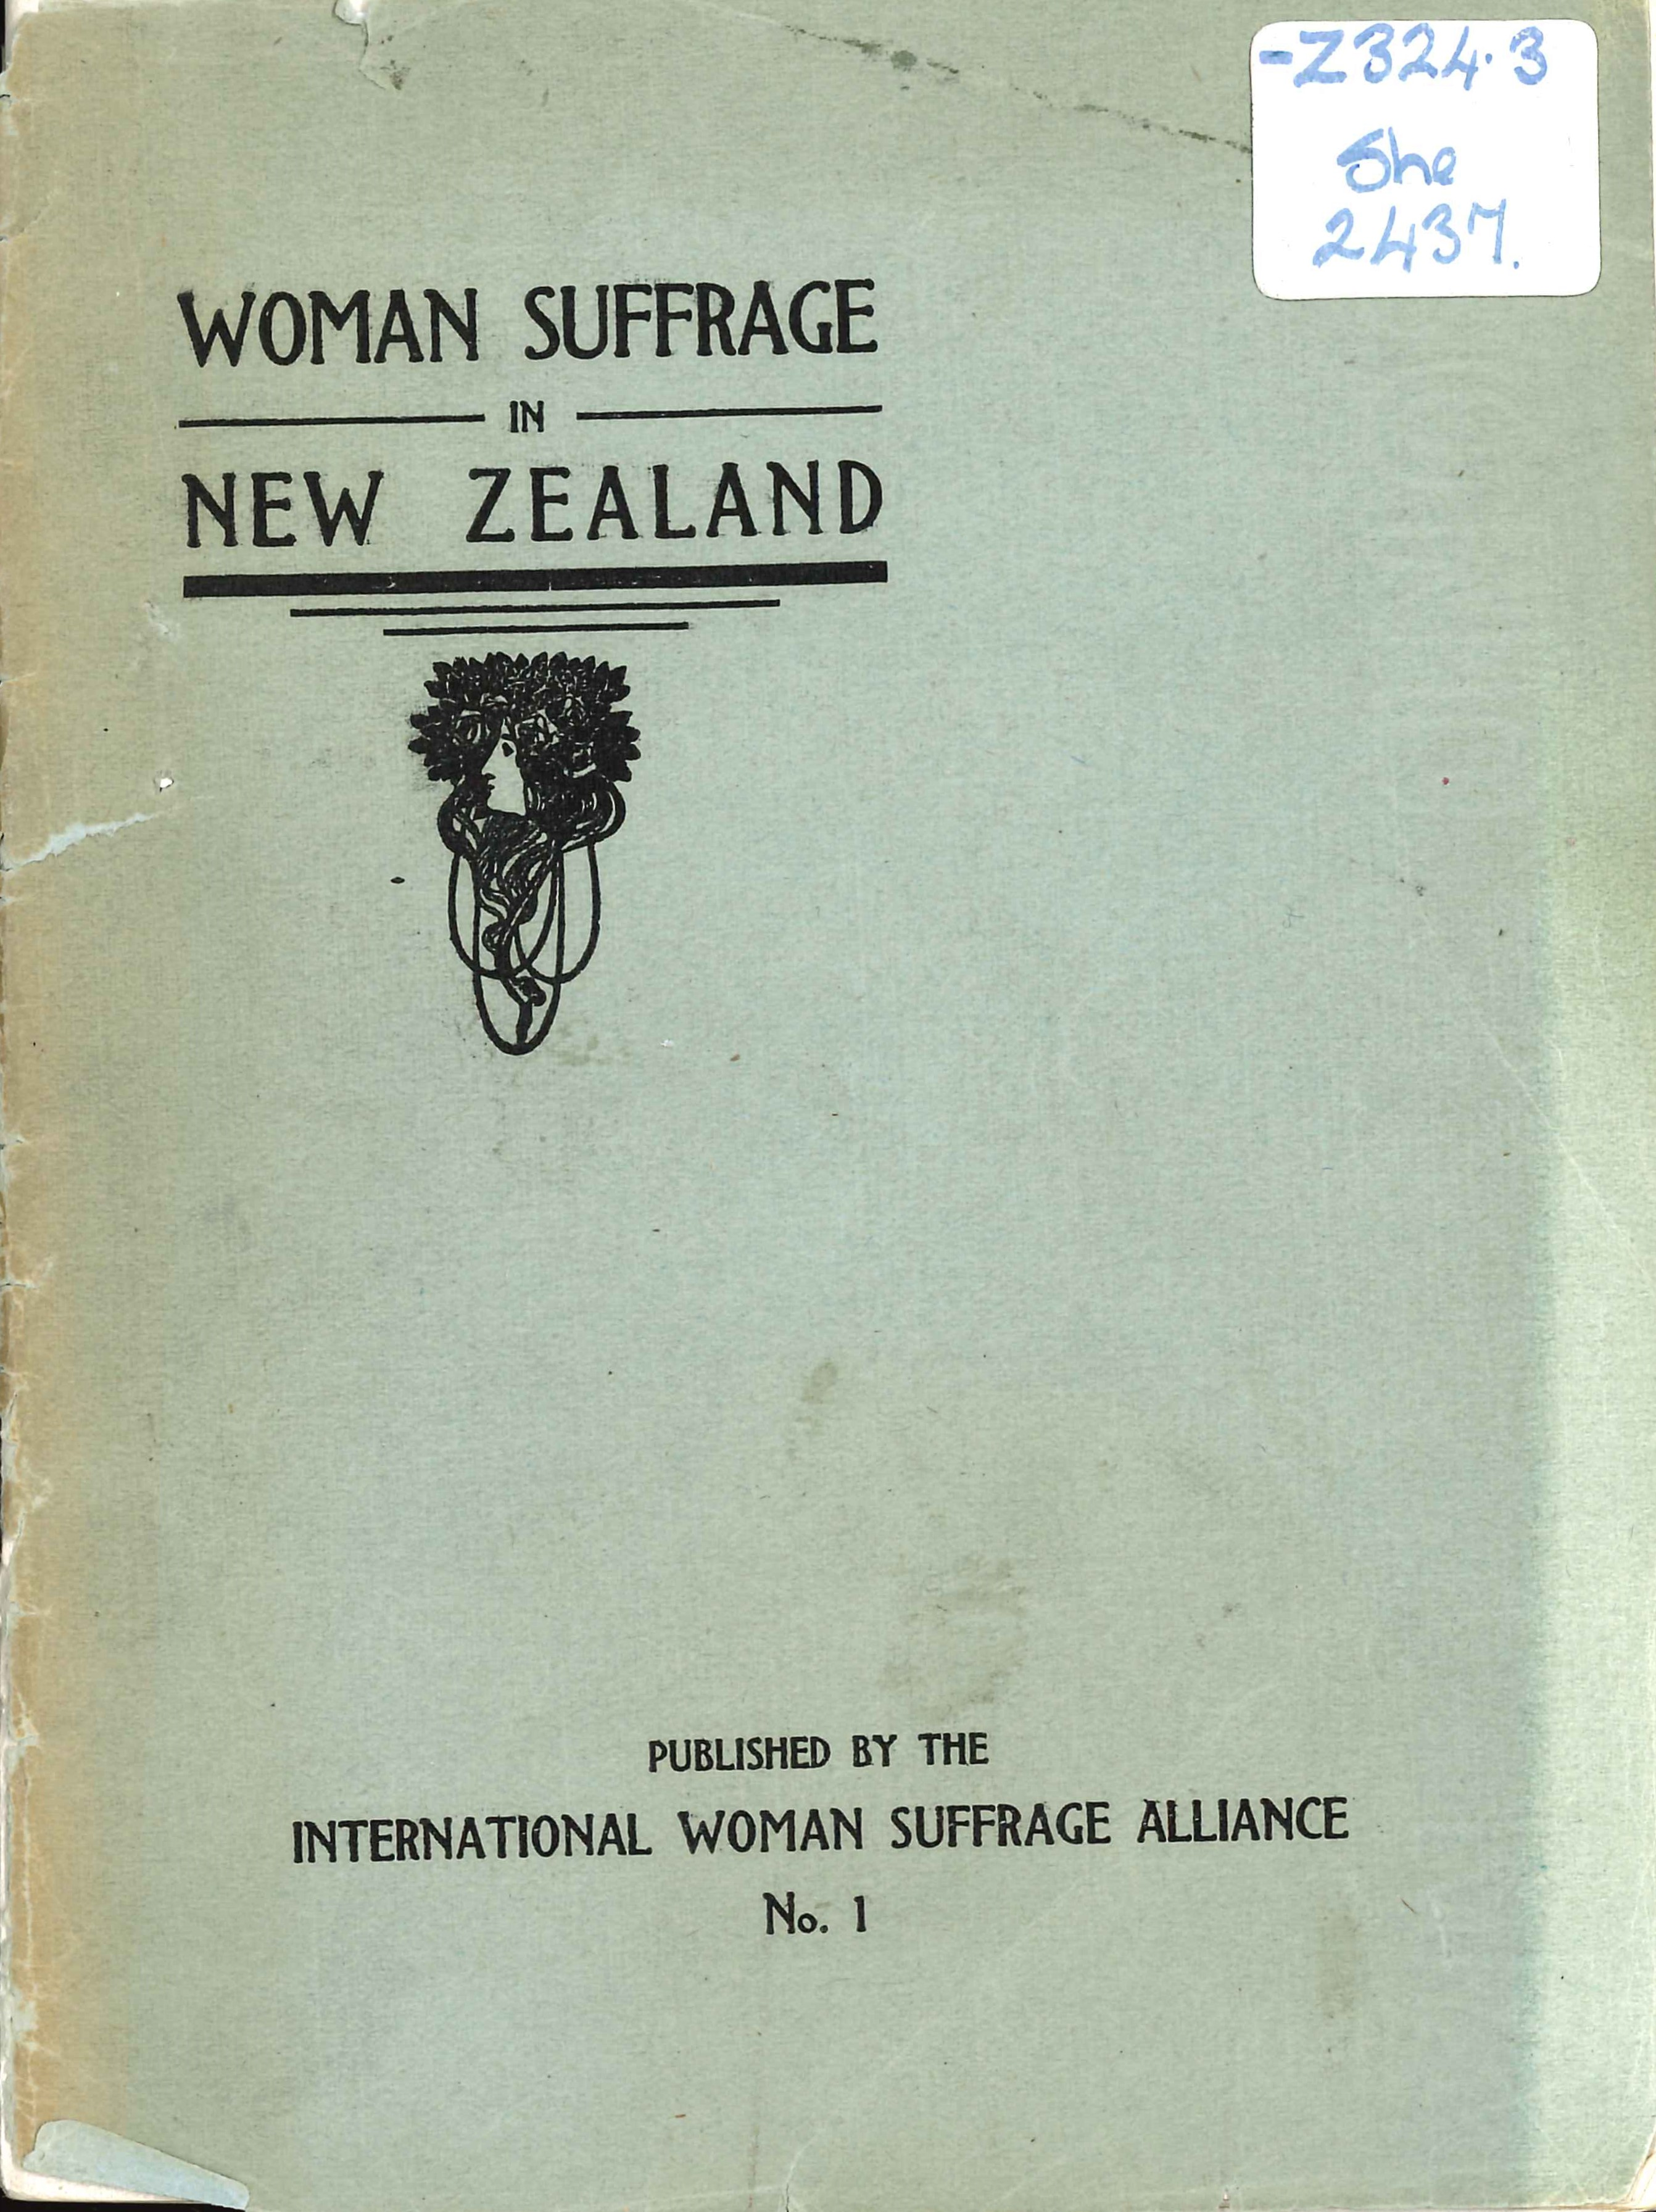 Kate Sheppard. Woman suffrage in New Zealand. London: International Woman Suffrage Alliance, 1907.